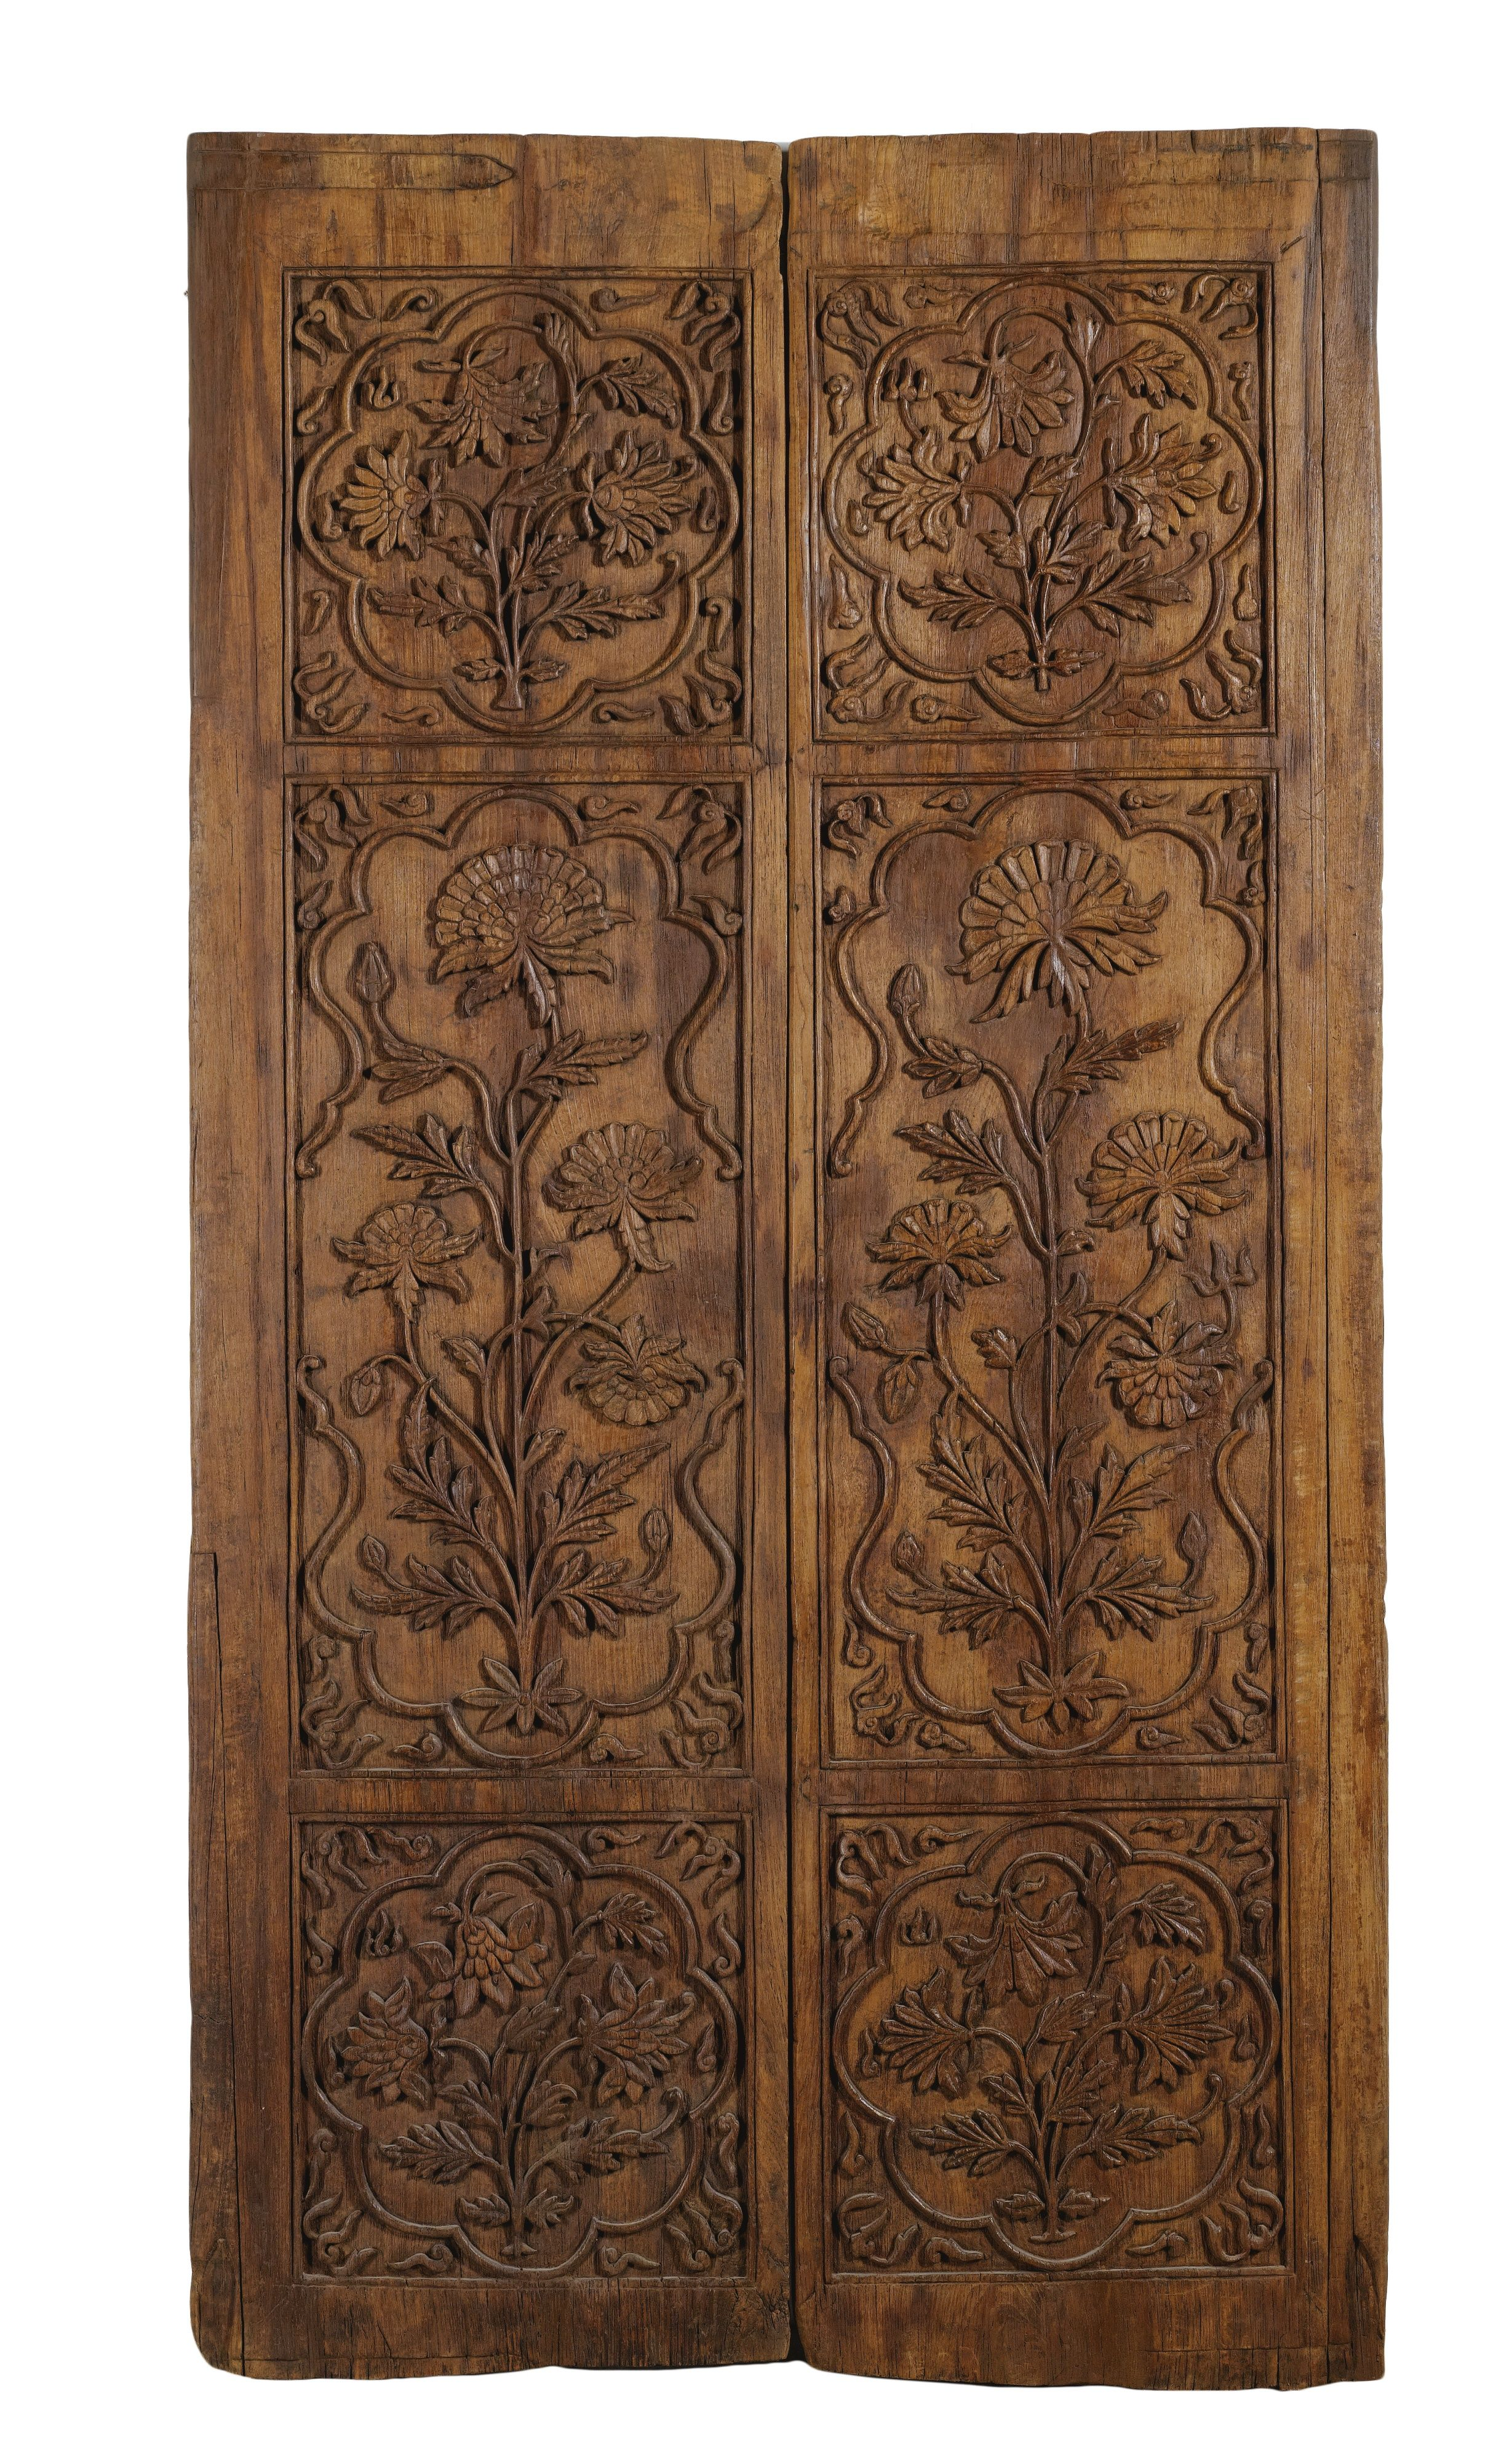 A Pair Of Mughal Carved Wooden Doors India 17th Century Comprising Two Each Rectangular Form Divided Into Three Panels Finely With